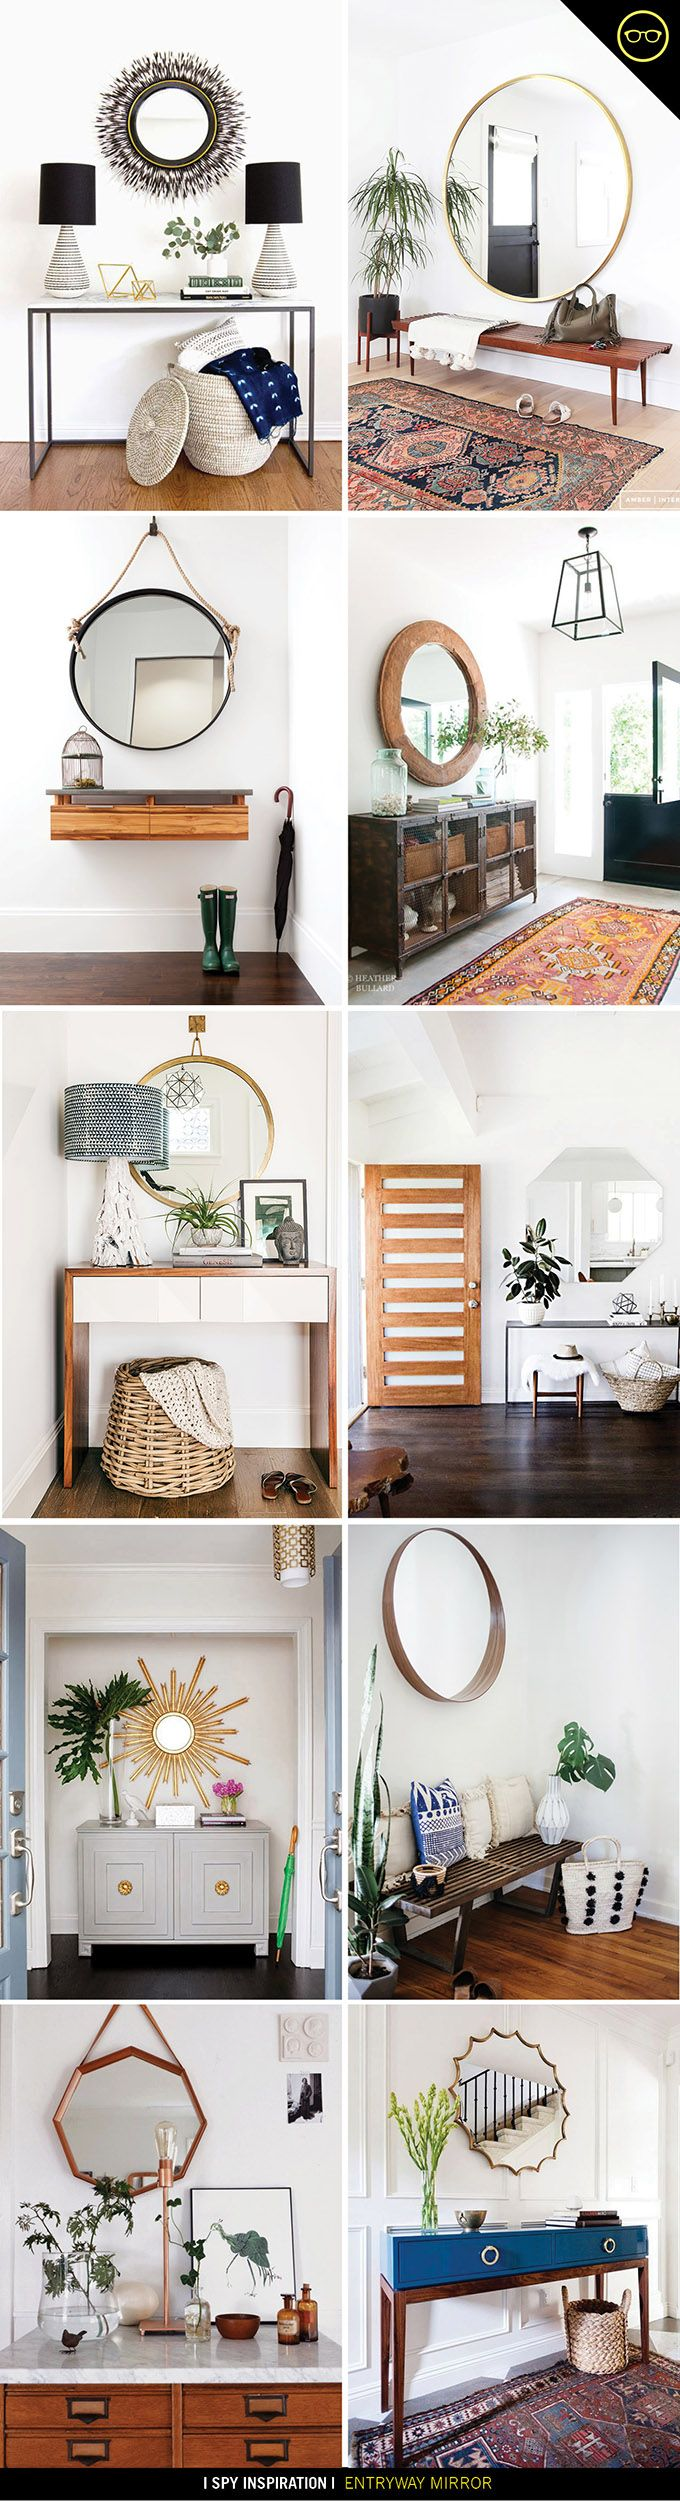 Circular mirrors in entryways and hallways